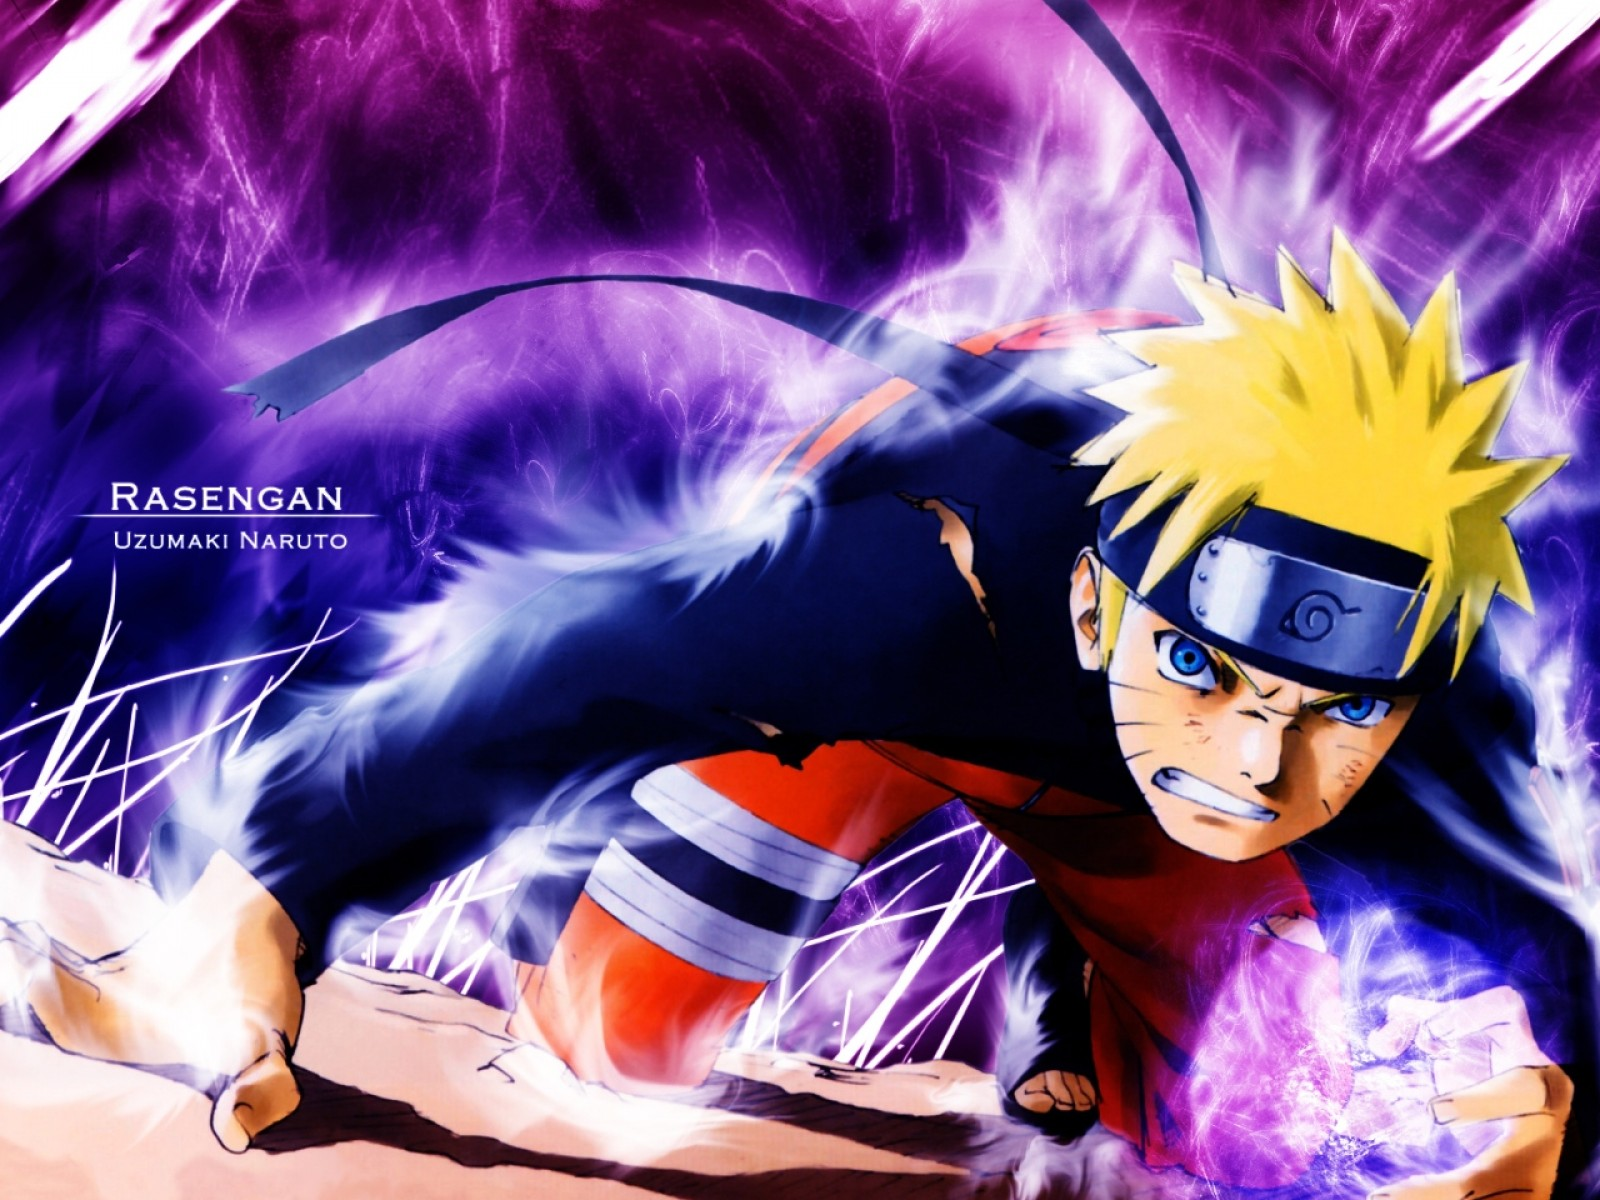 Naruto Shippuden   Rasengan HD Wallpaper Animation 1600x1200